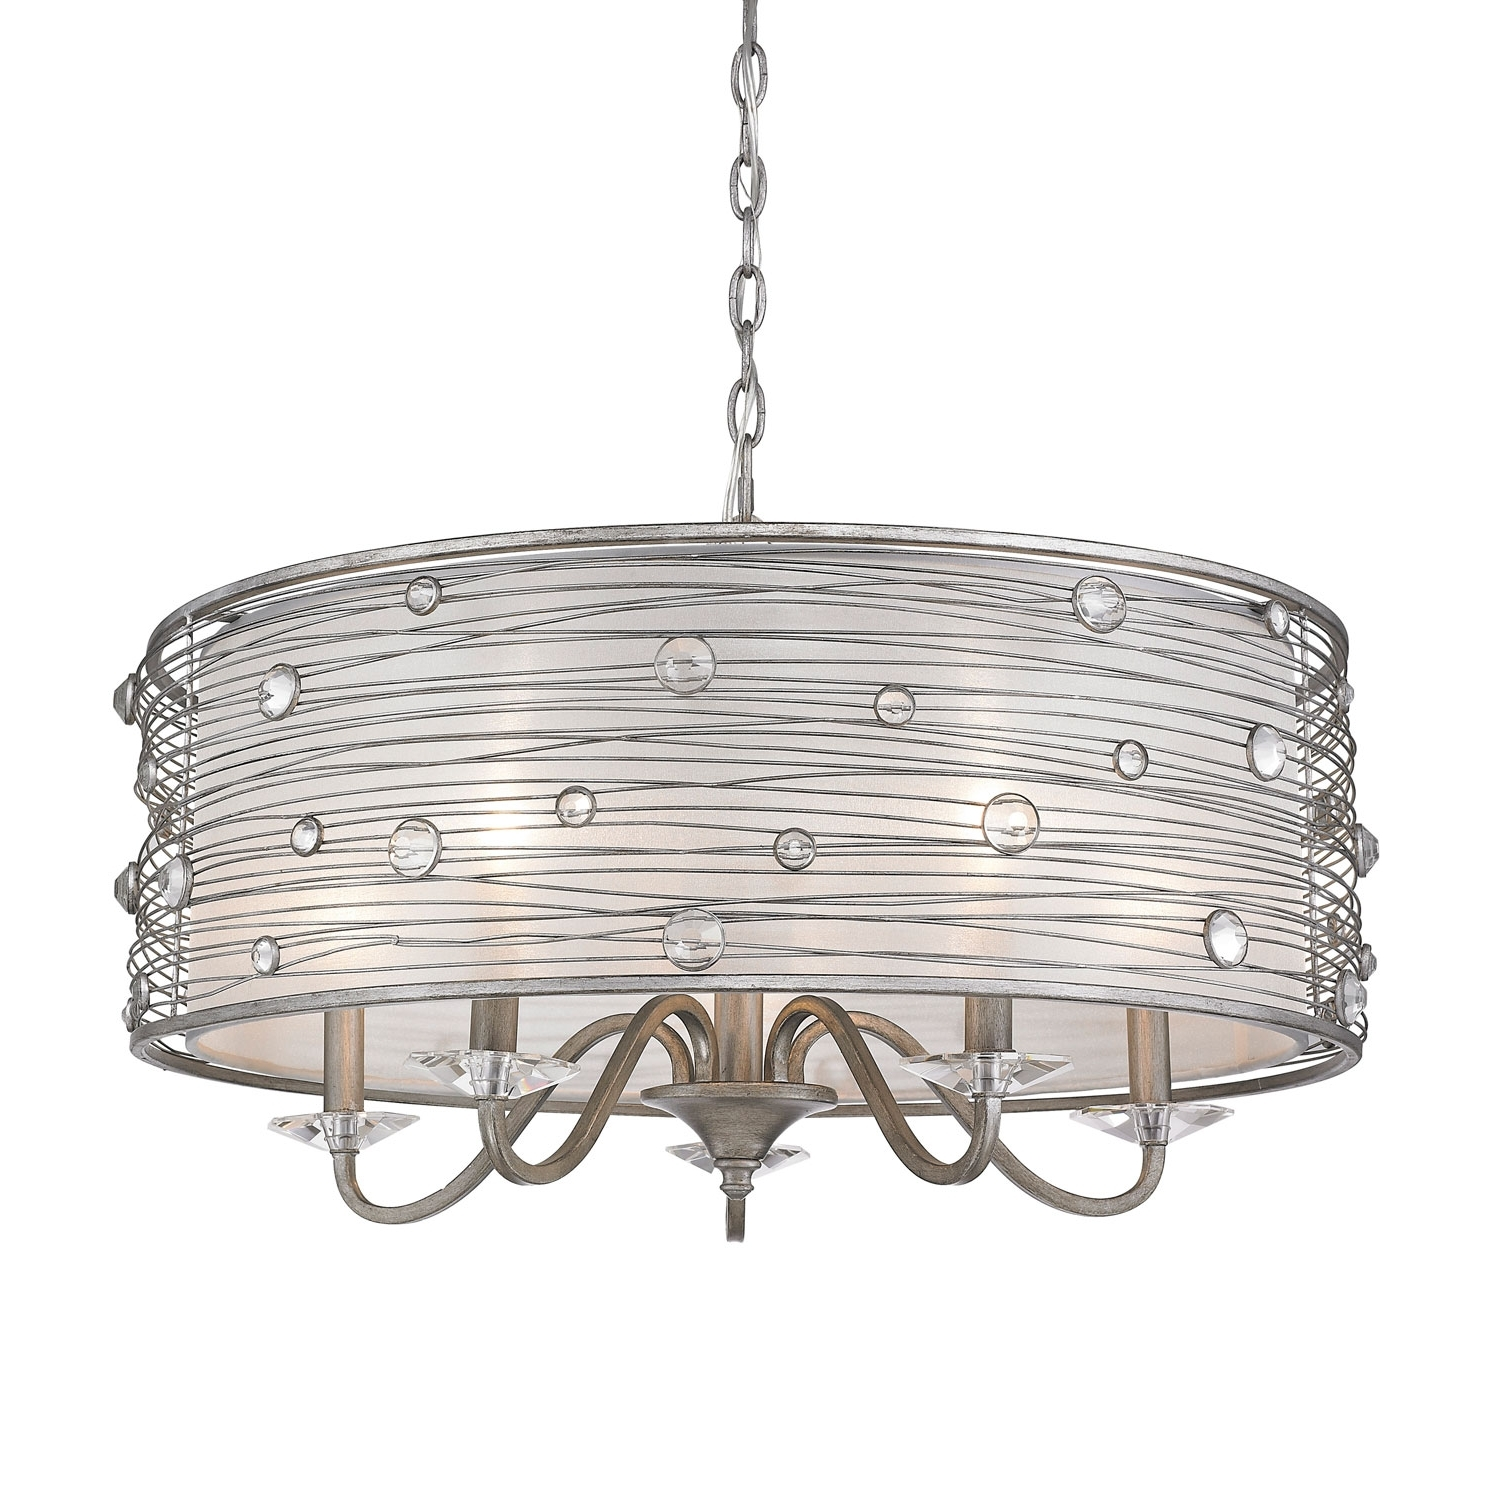 Golden Lighting Joia Peruvian Silver Five Light Chandelier On Sale For Latest Silver Chandeliers (Gallery 14 of 15)